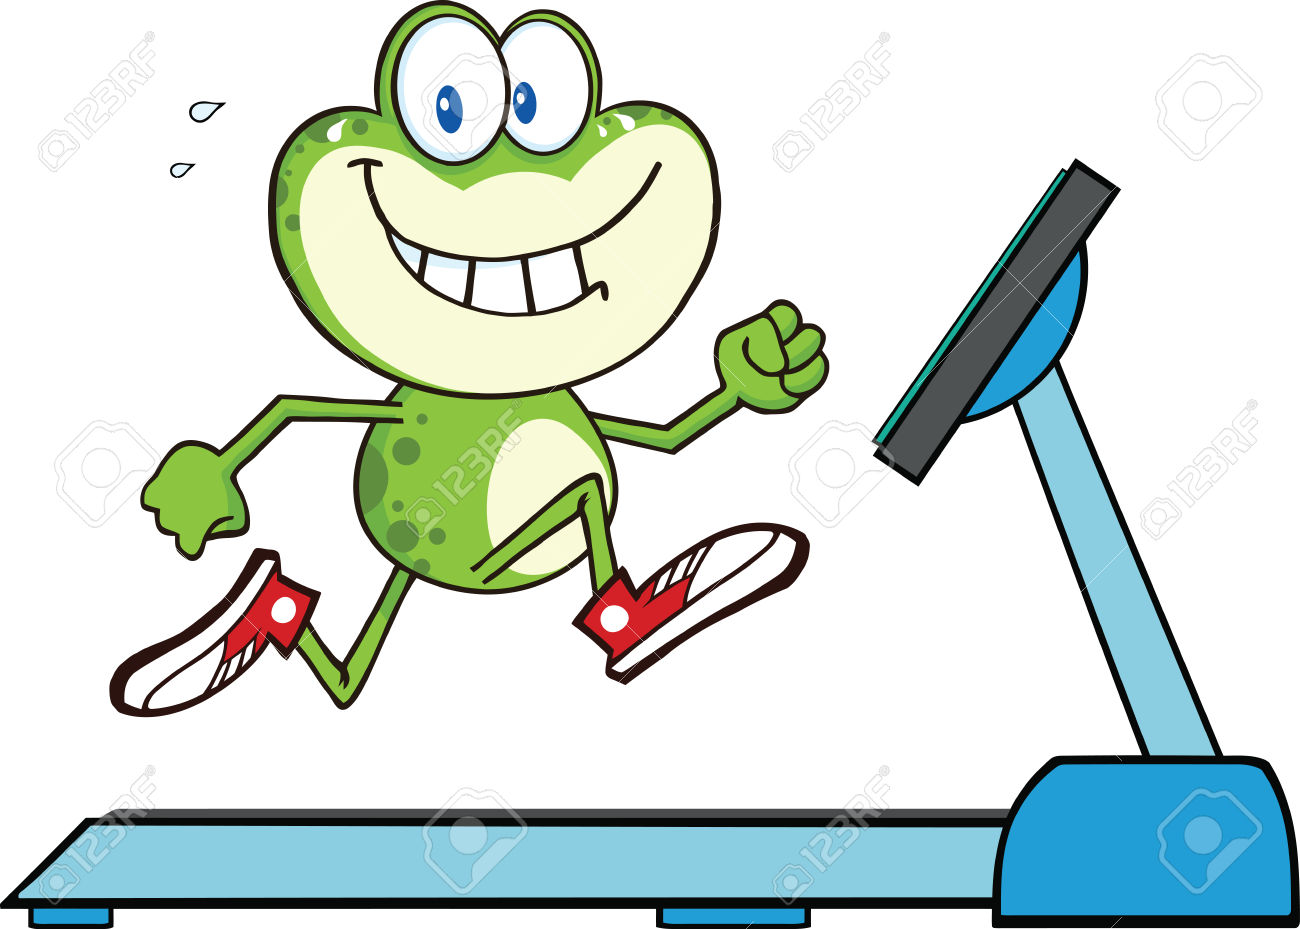 Healthy Green Frog Running On A Treadmill Illustration Isolated.